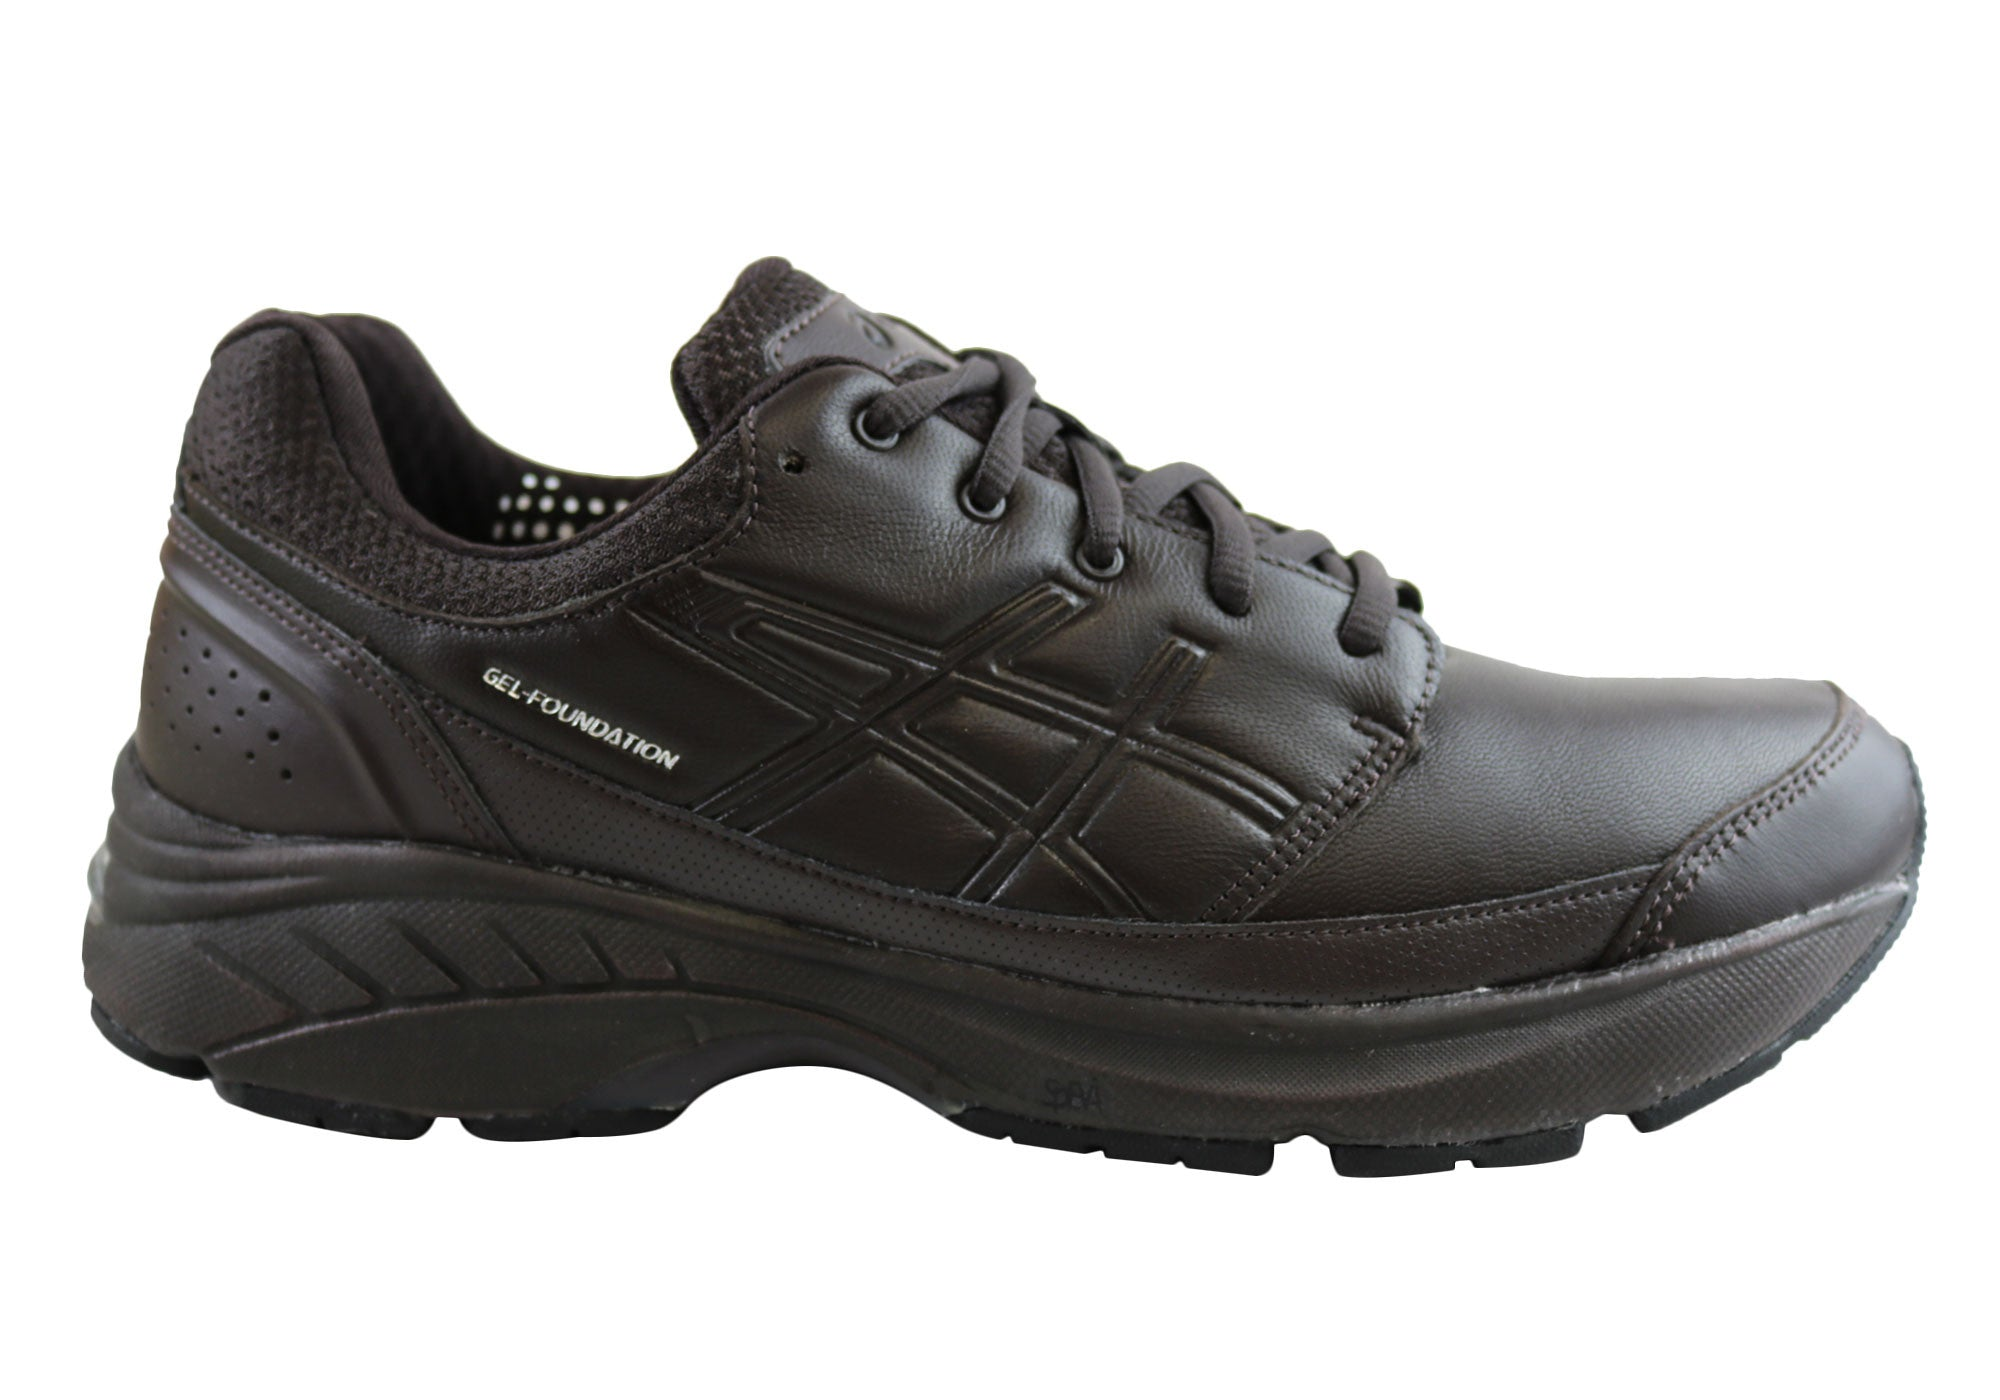 Asics Gel Foundation Workplace Mens Walking Shoes